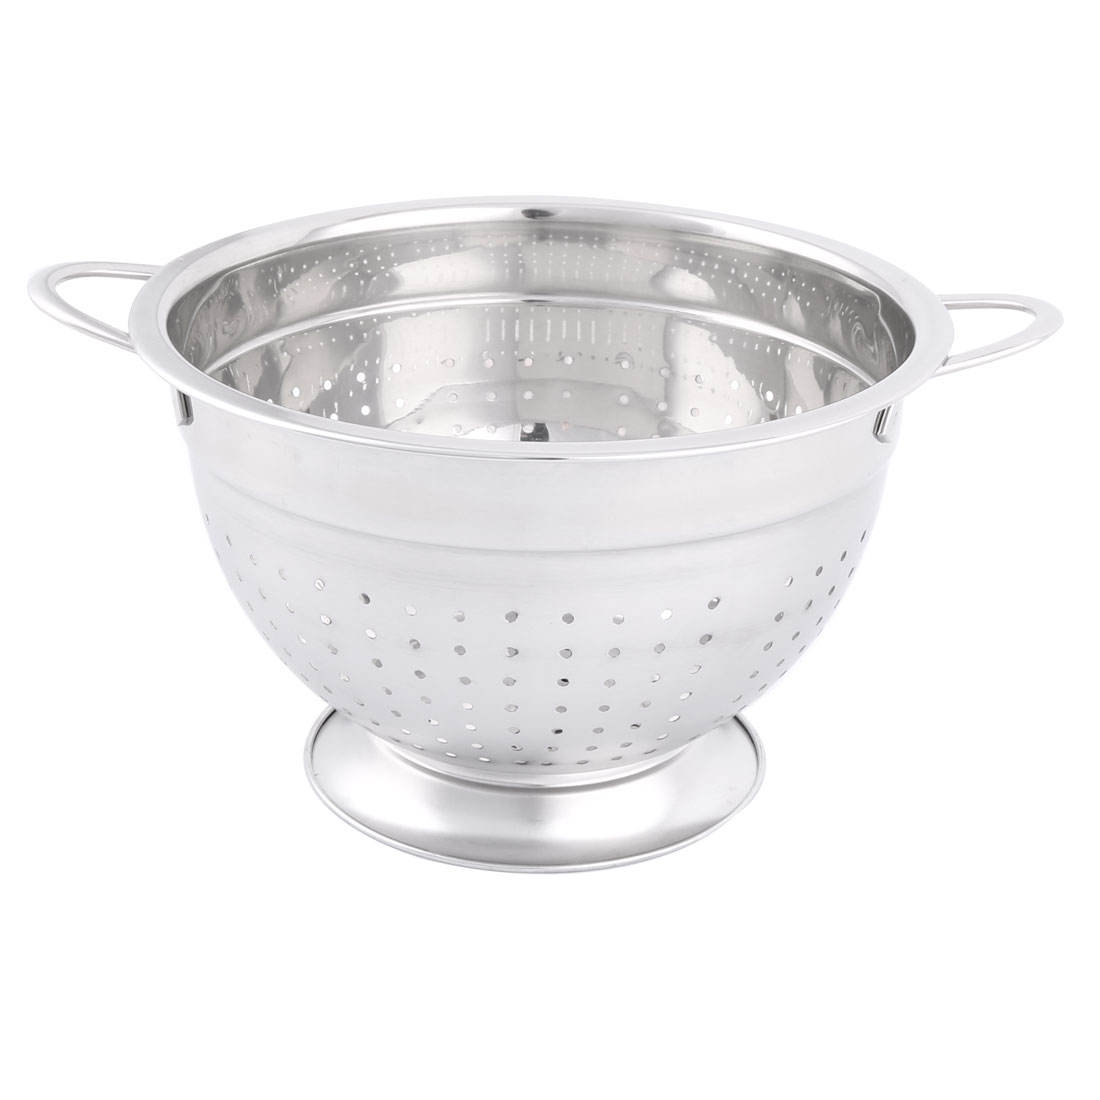 Household Stainless Steel Fruit Vegetable Nuts Drain Basket Silver Tone 18cm Dia